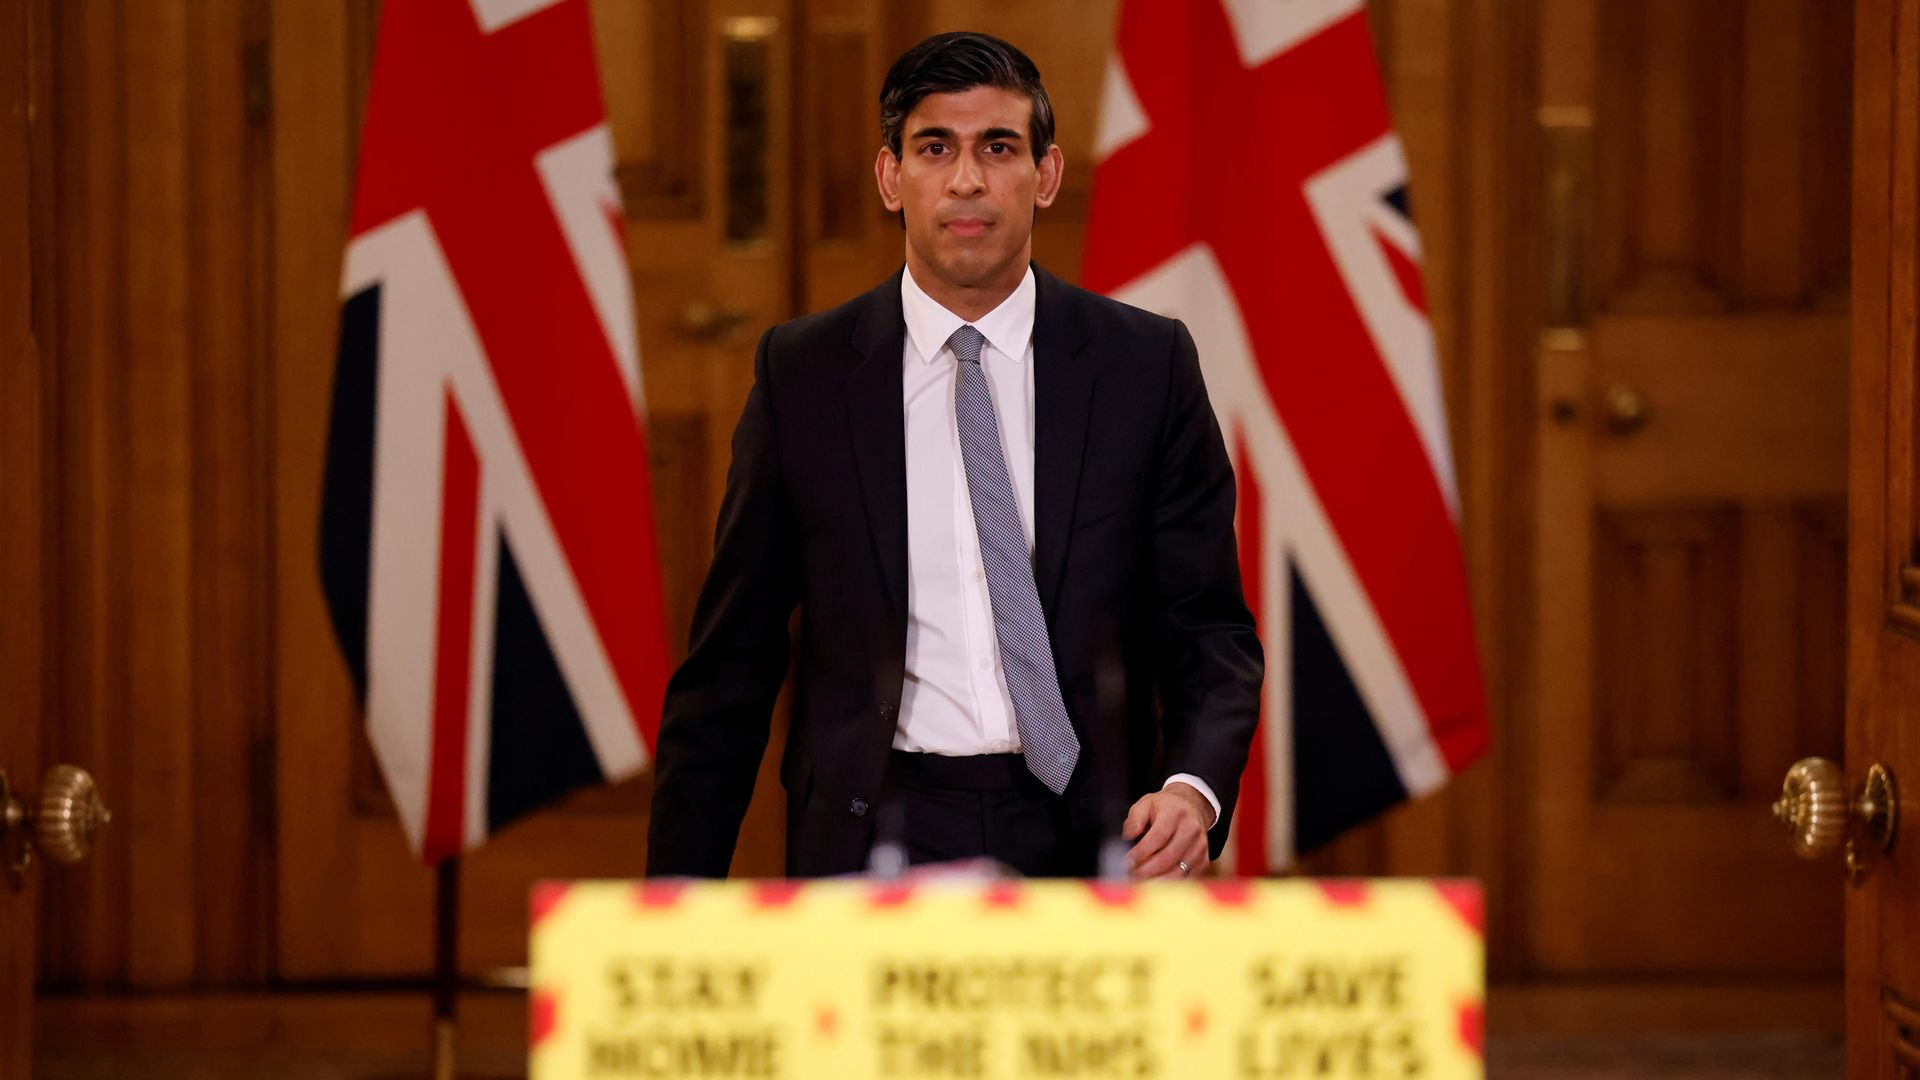 Rishi Sunak during a press conference in 10 Downing Street - Credit: PA